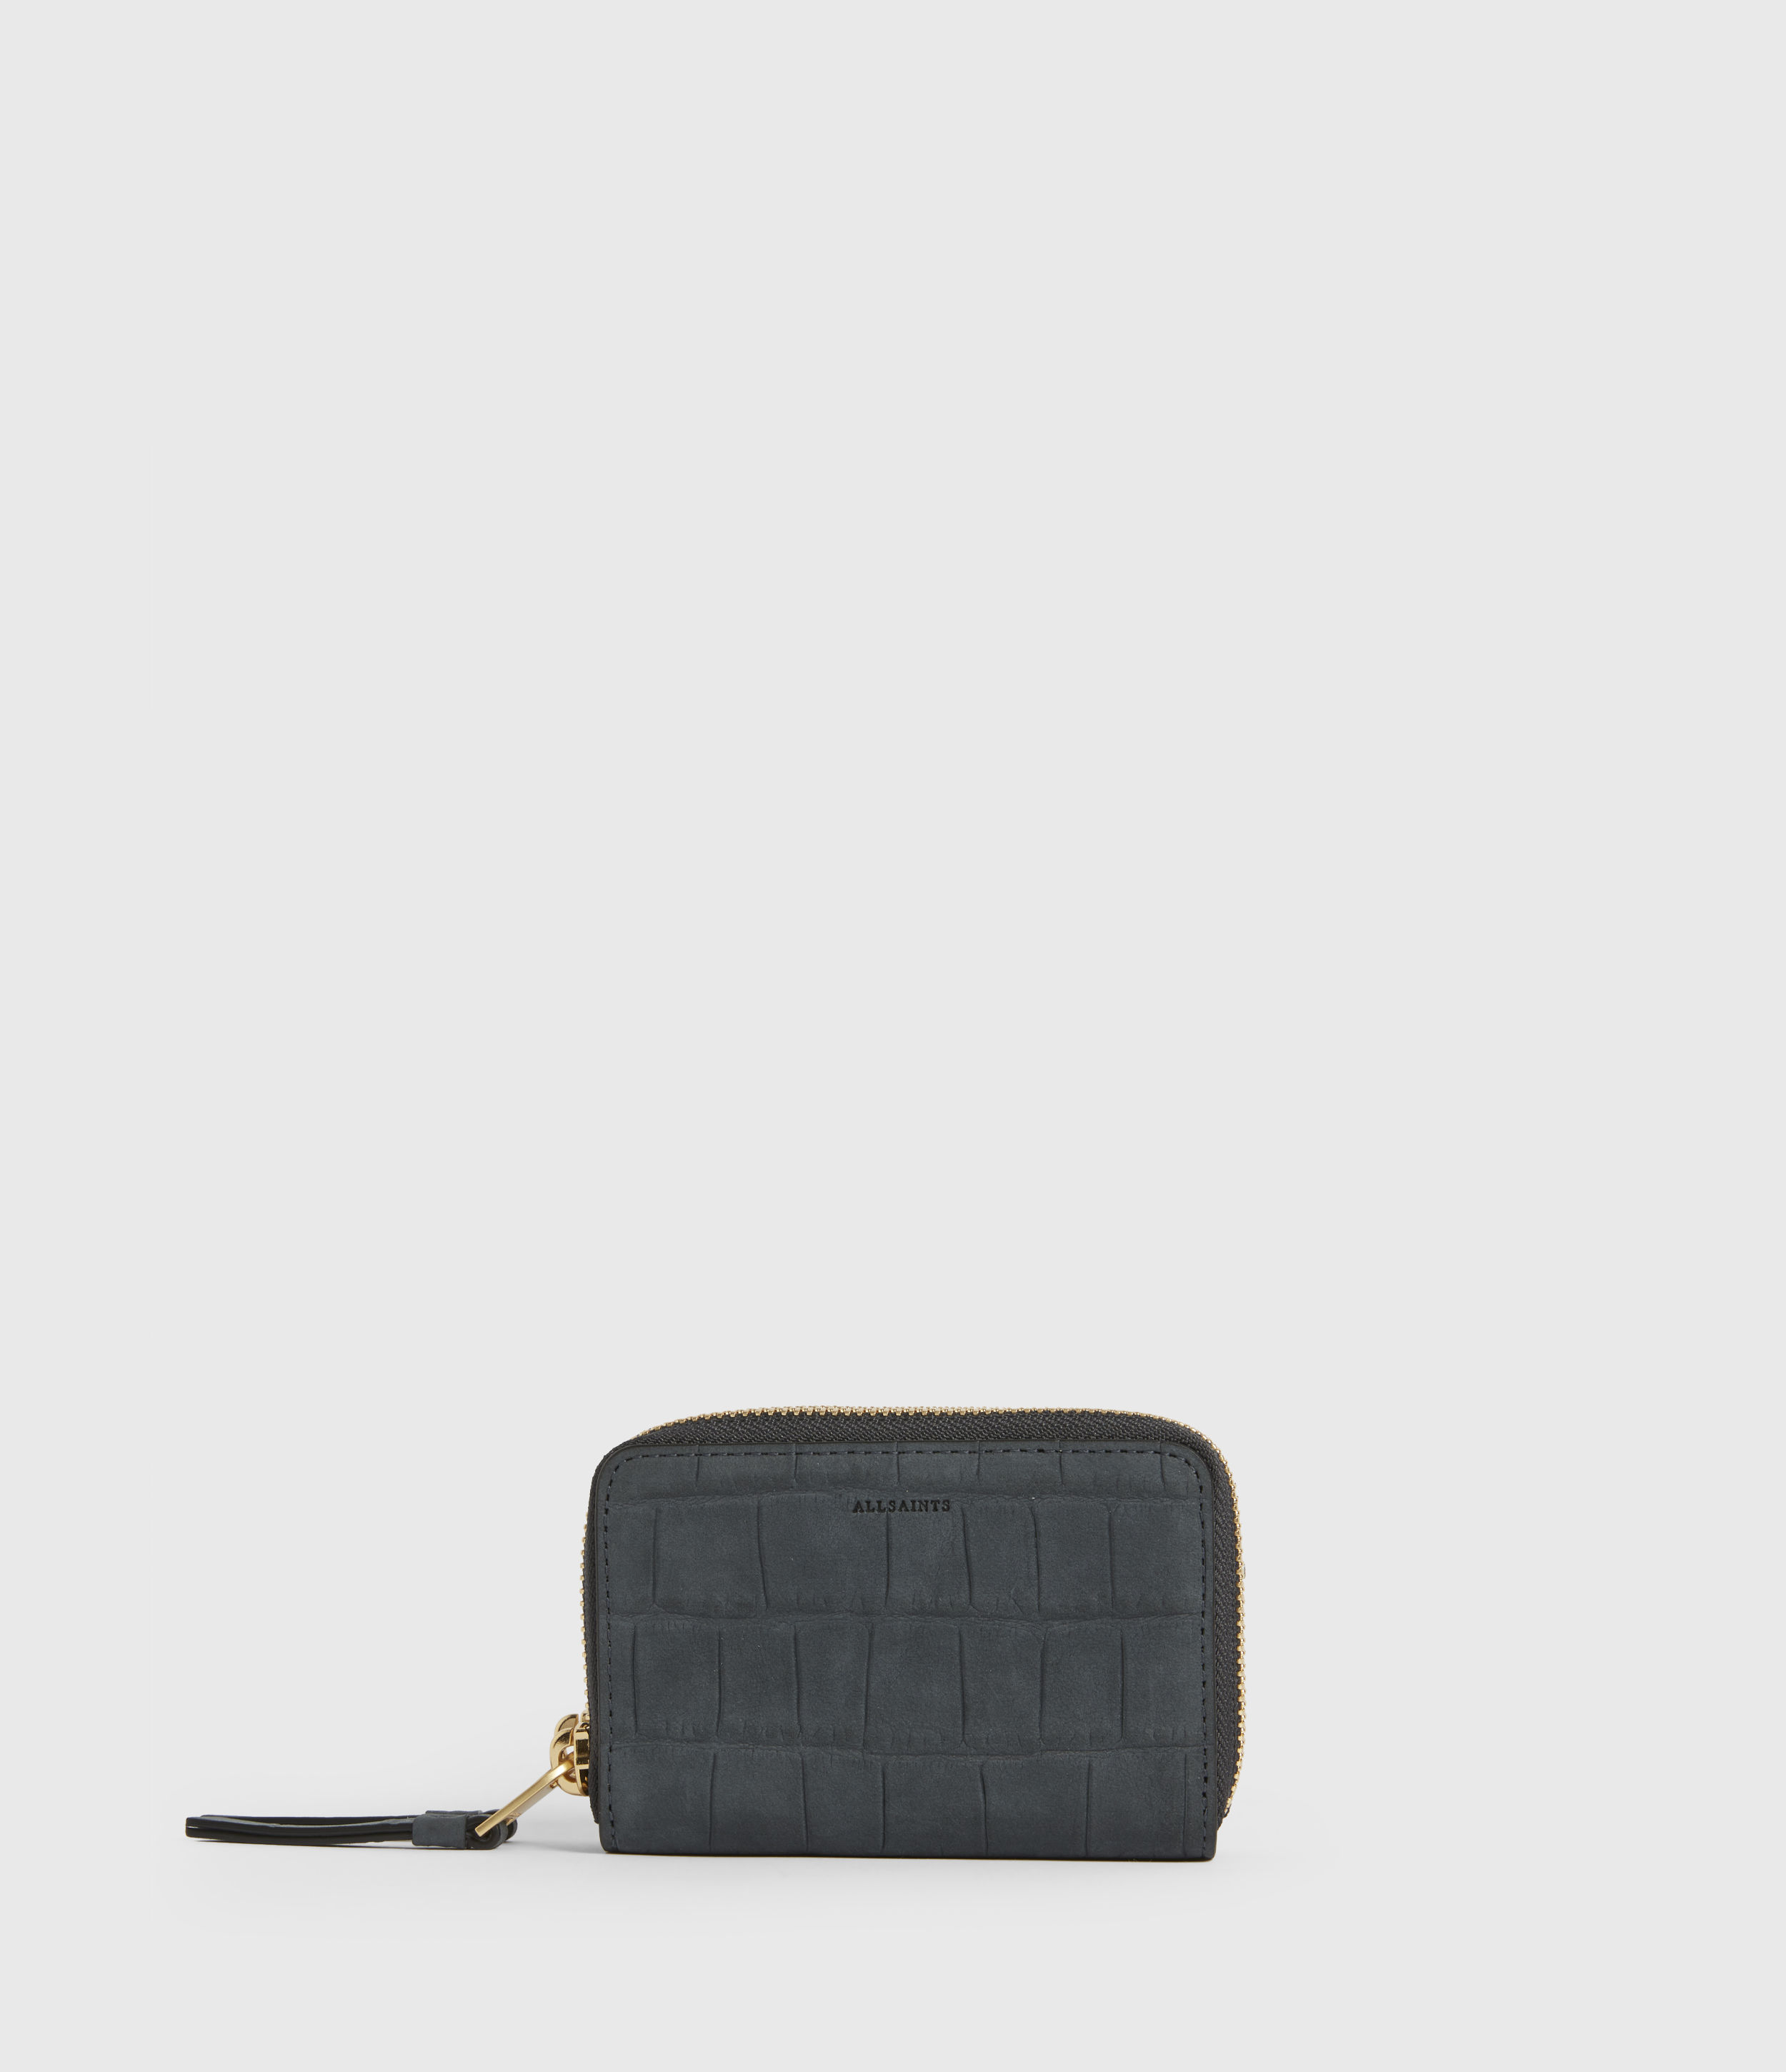 AllSaints Nantes Croco Leather Cardholder